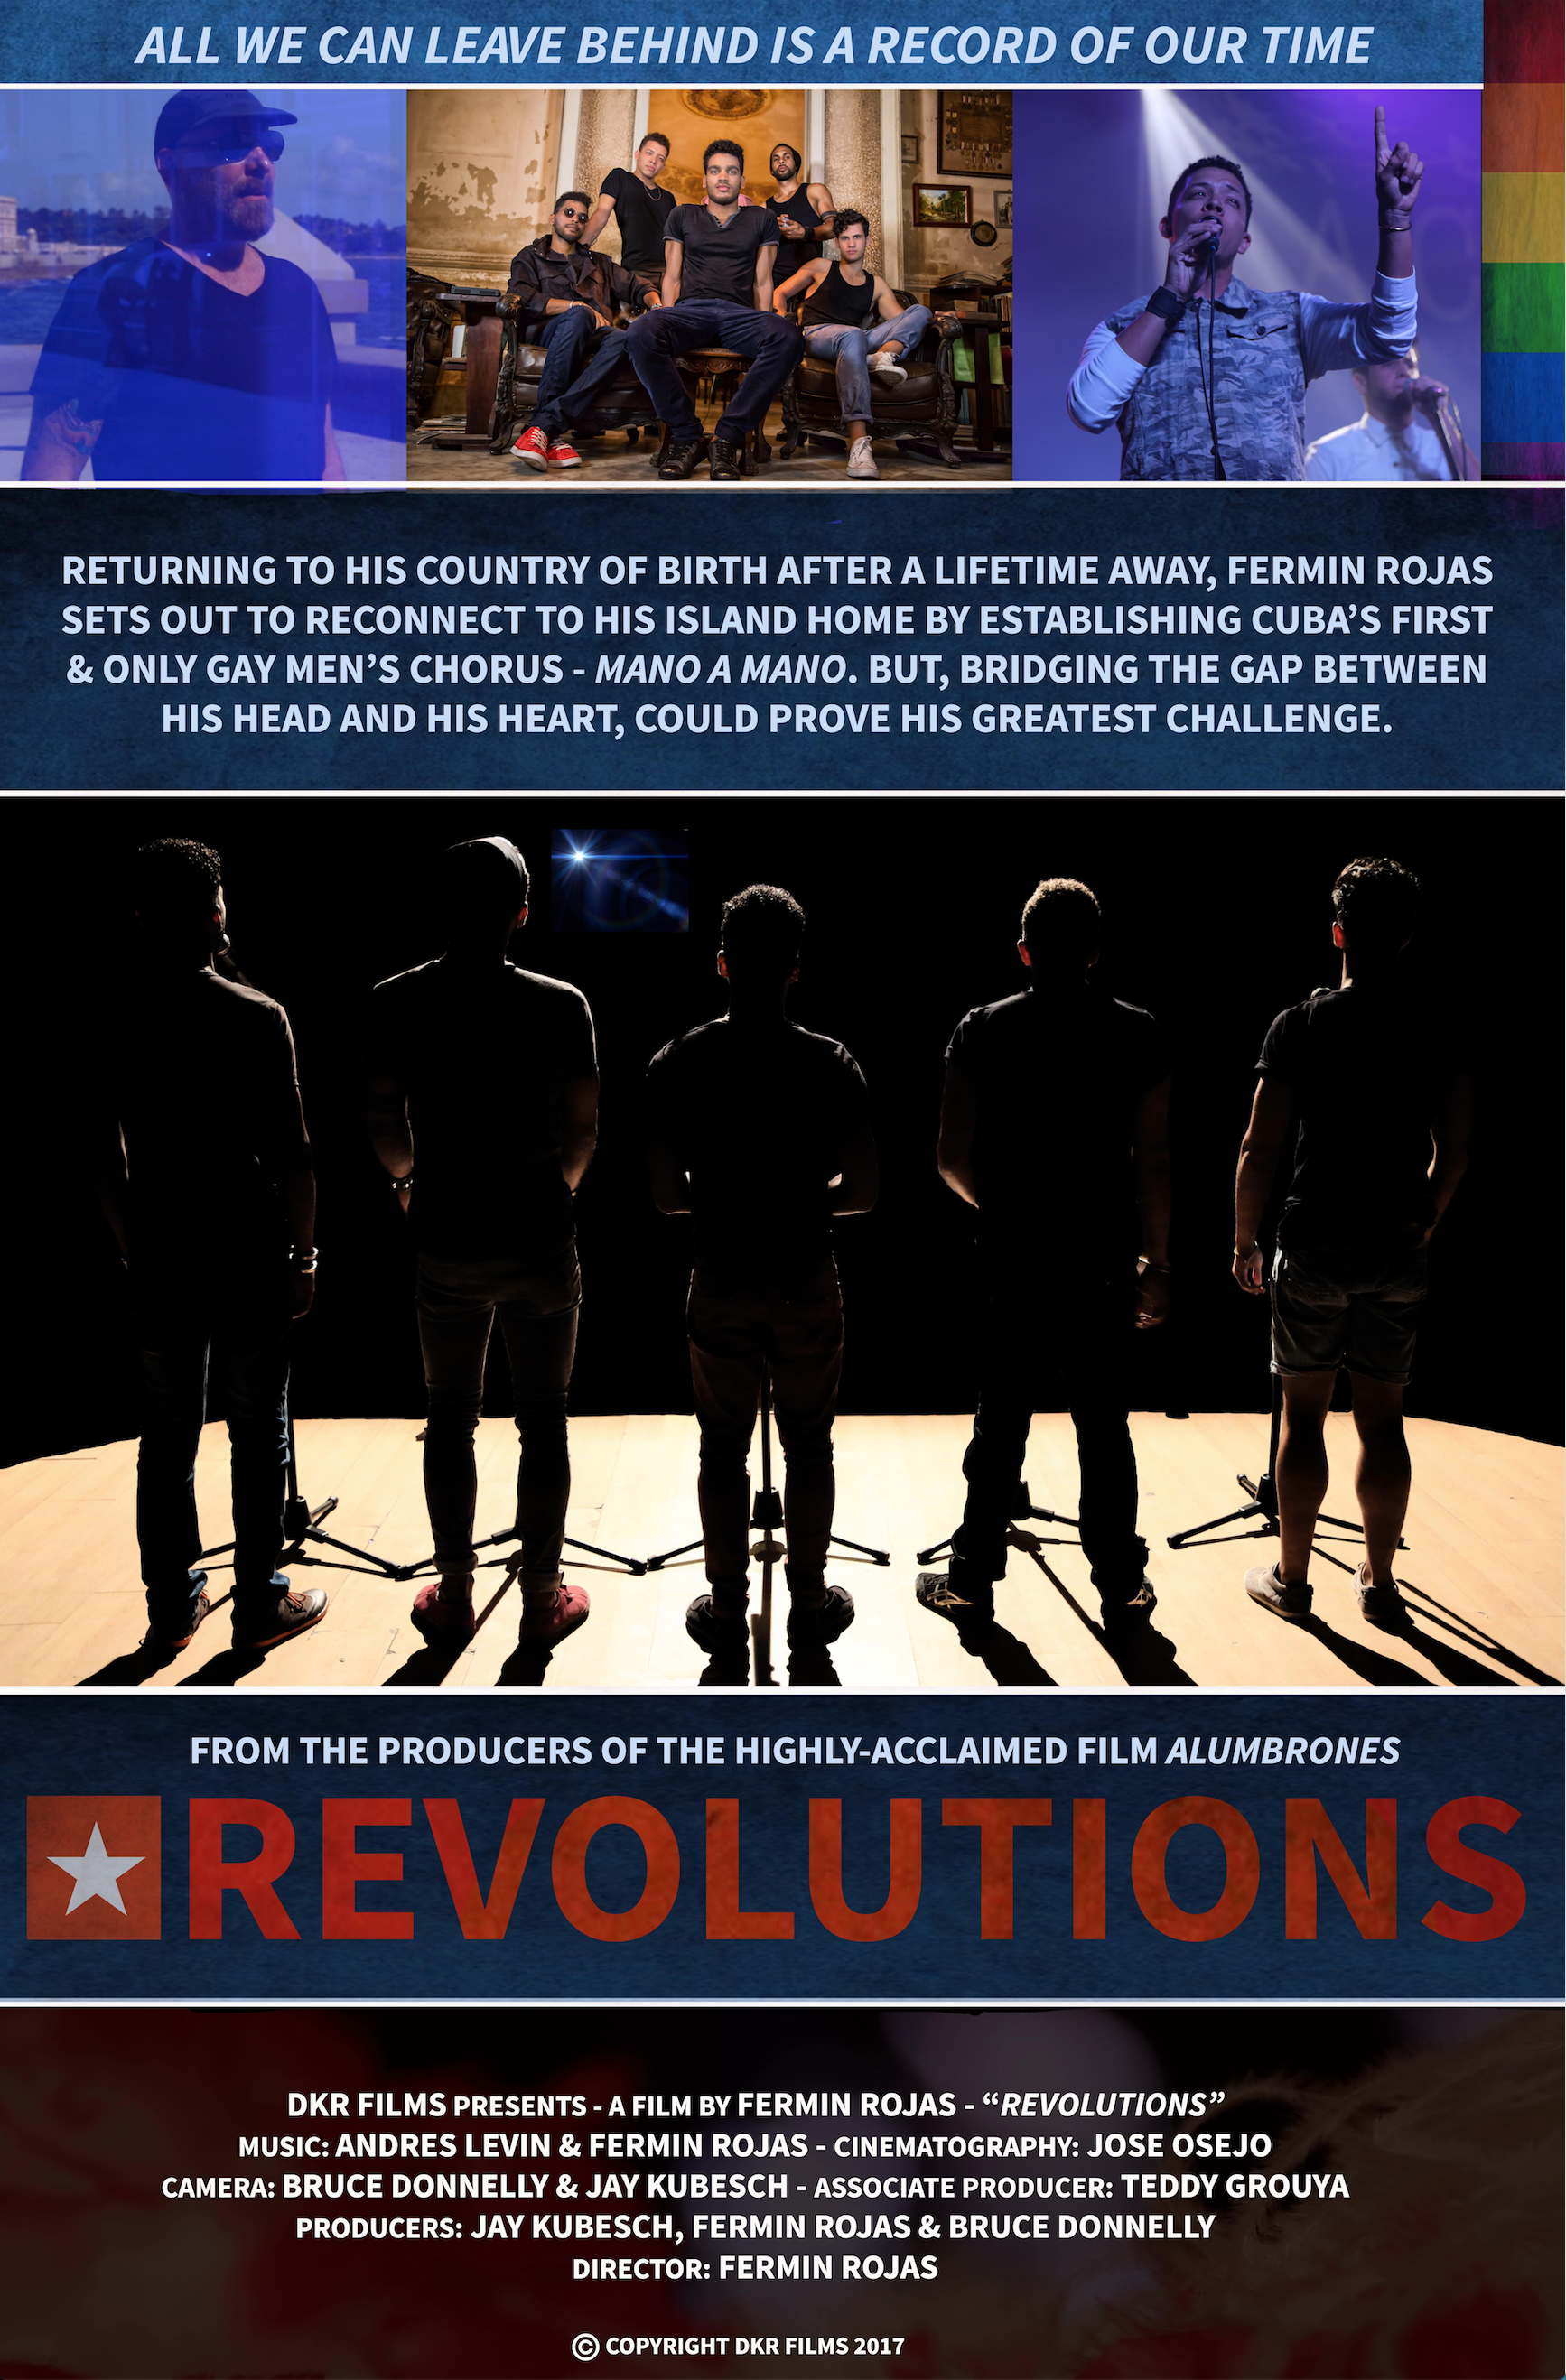 REVOLUTIONS - DOCUMENTARY FEATURE